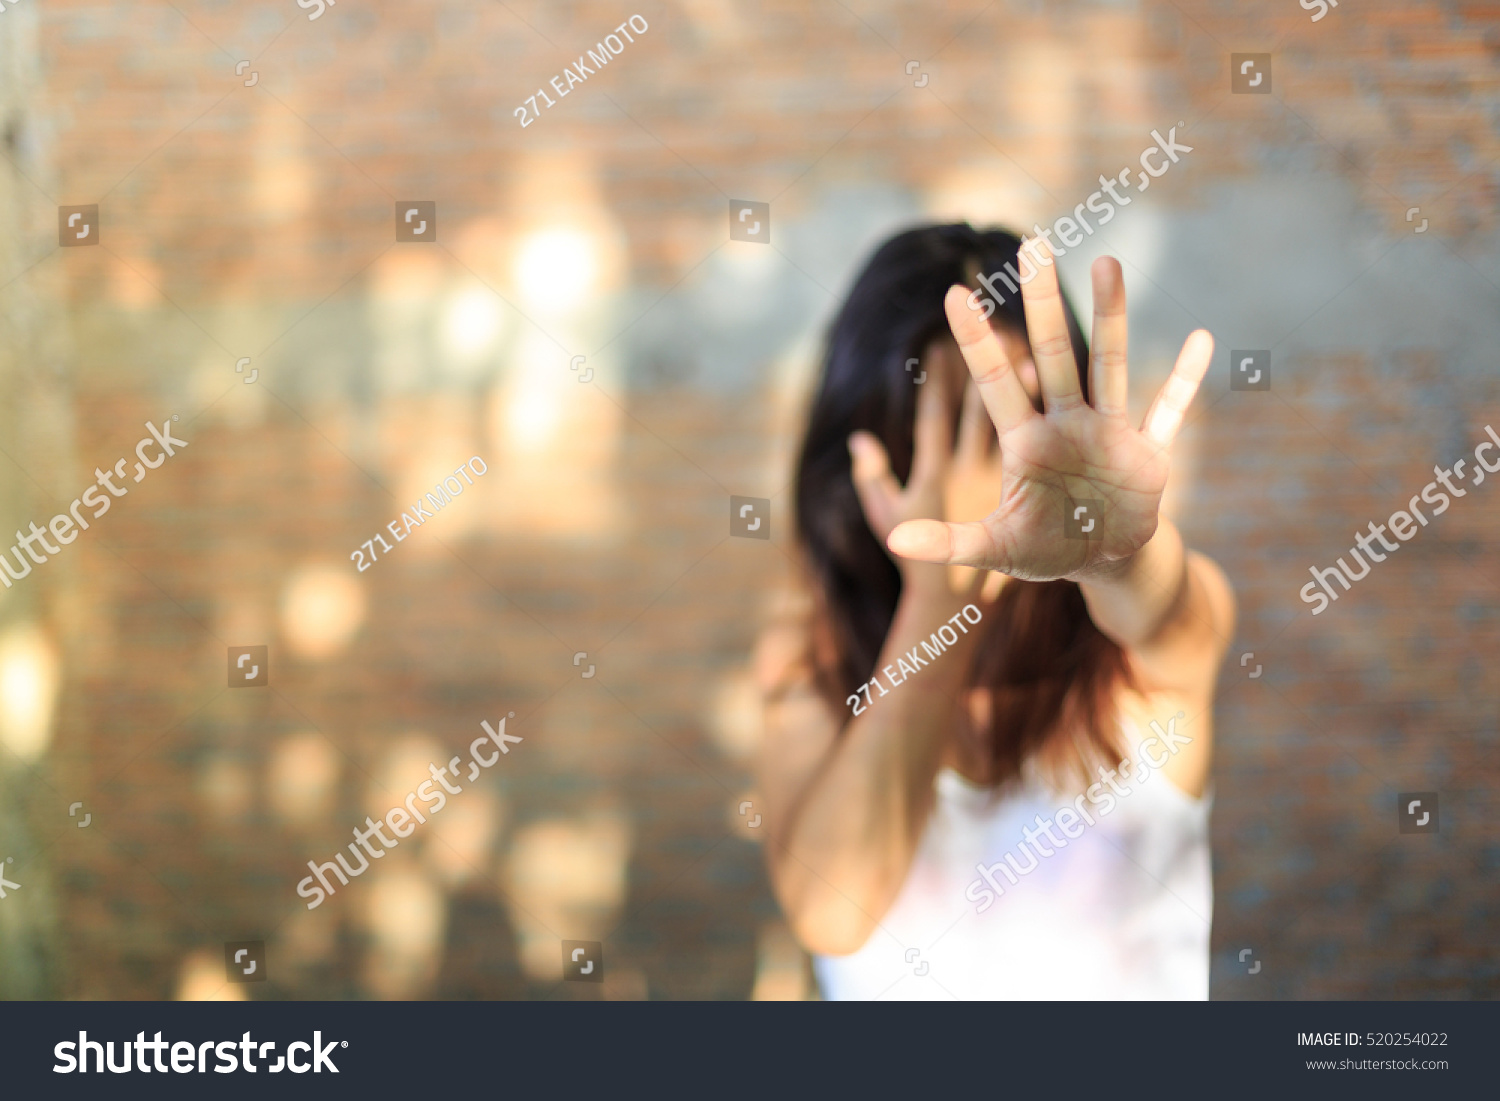 stock-photo-woman-bondage-in-angle-of-abandoned-building-image-blur-stop-violence-against-women-520254022